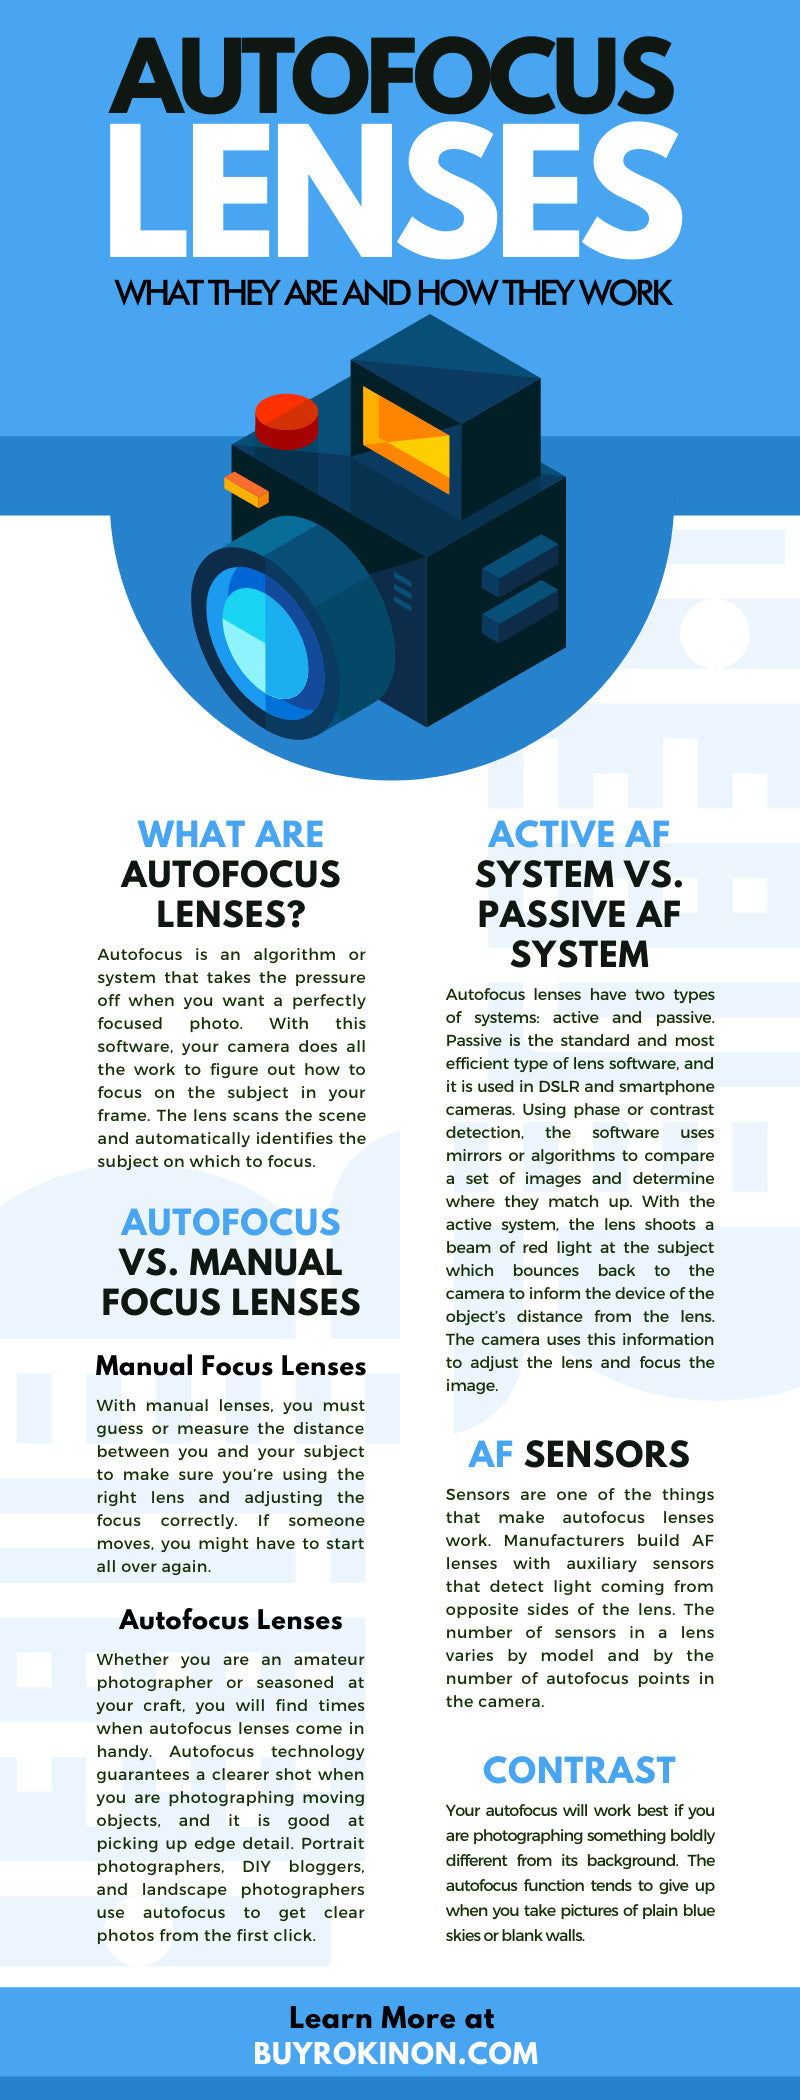 Autofocus Lenses: What They Are and How They Work